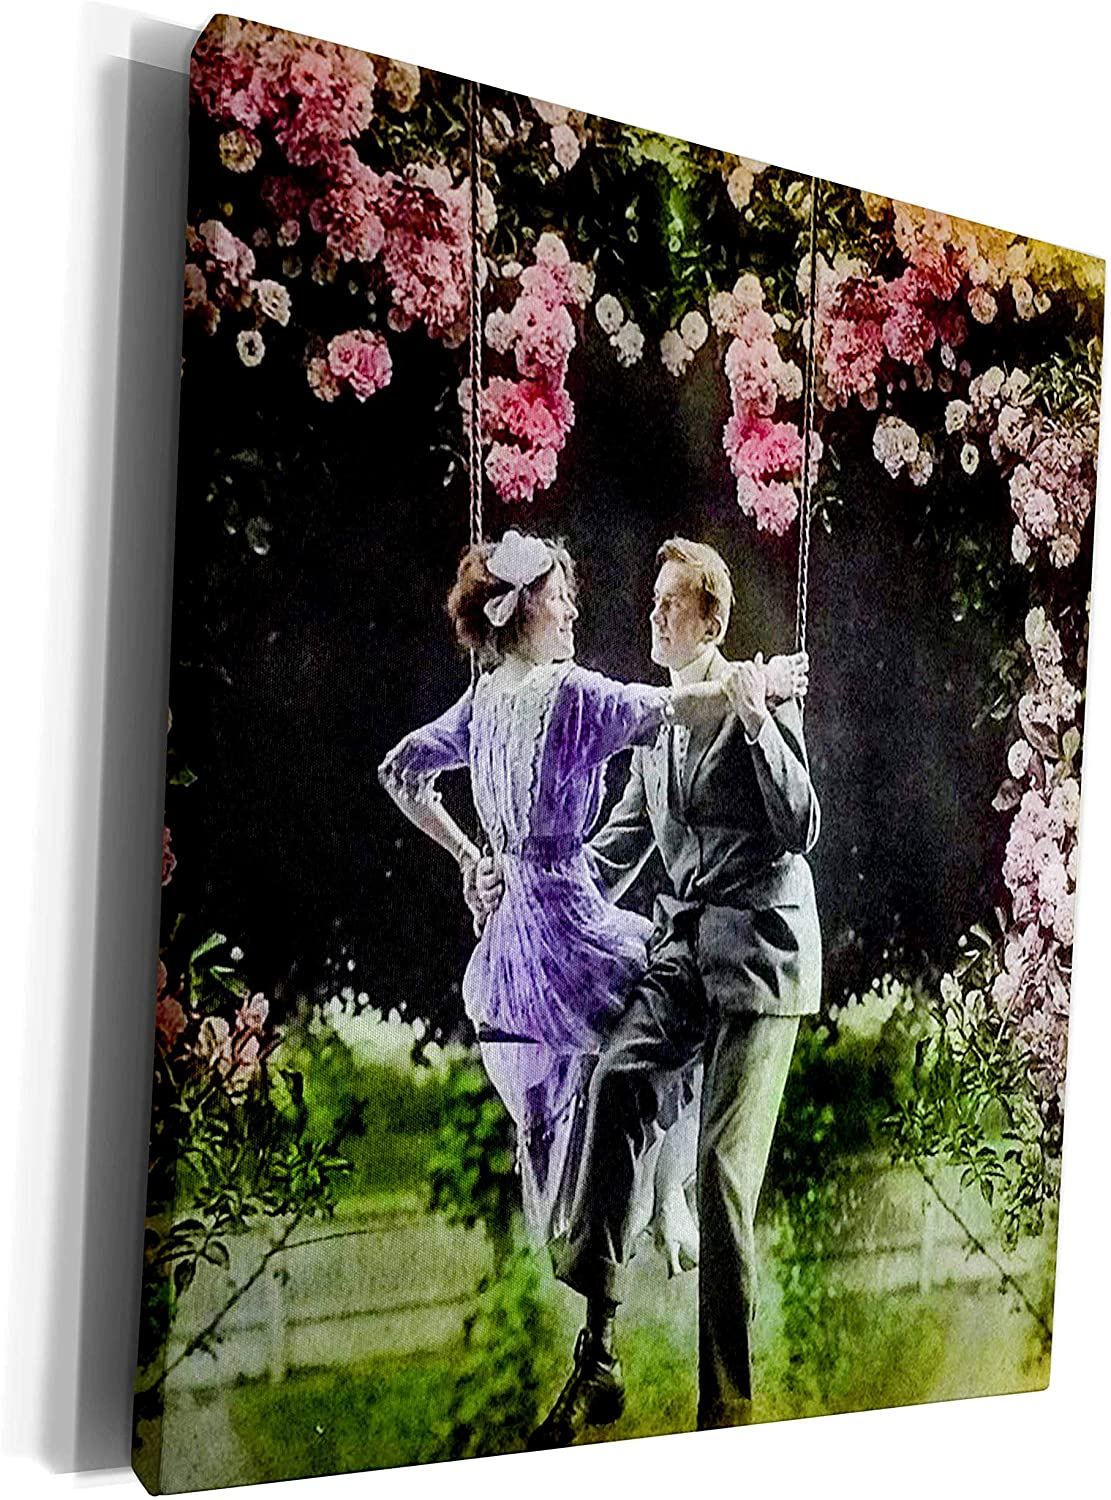 3dRose Scenes from the Past Magic Lantern Slides - Swinging Under the Stars An Edwardian Love Story Surreal Vintage 1910 - Museum Grade Canvas Wrap (cw_270042_1)